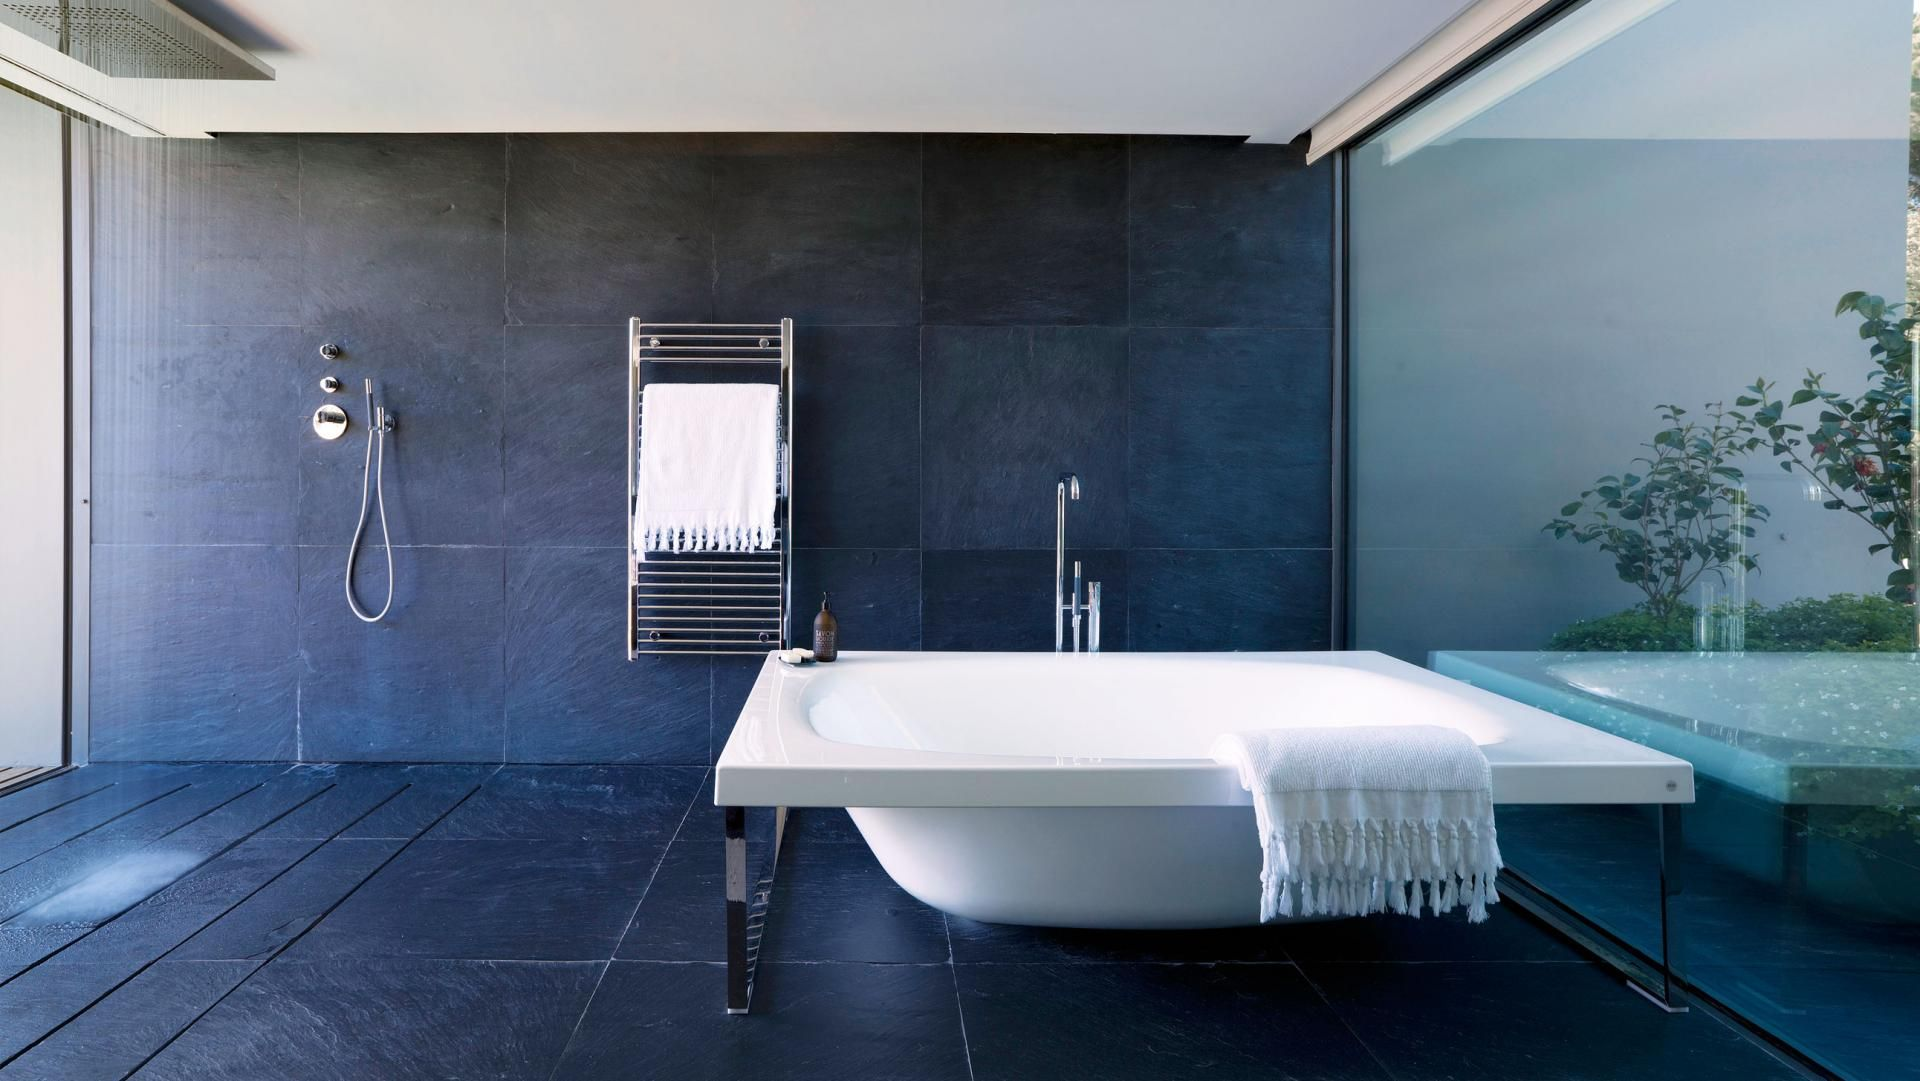 Top 7 Wet Room Design | Nice Bathrooms! | Pinterest | Wet rooms, Wet ...